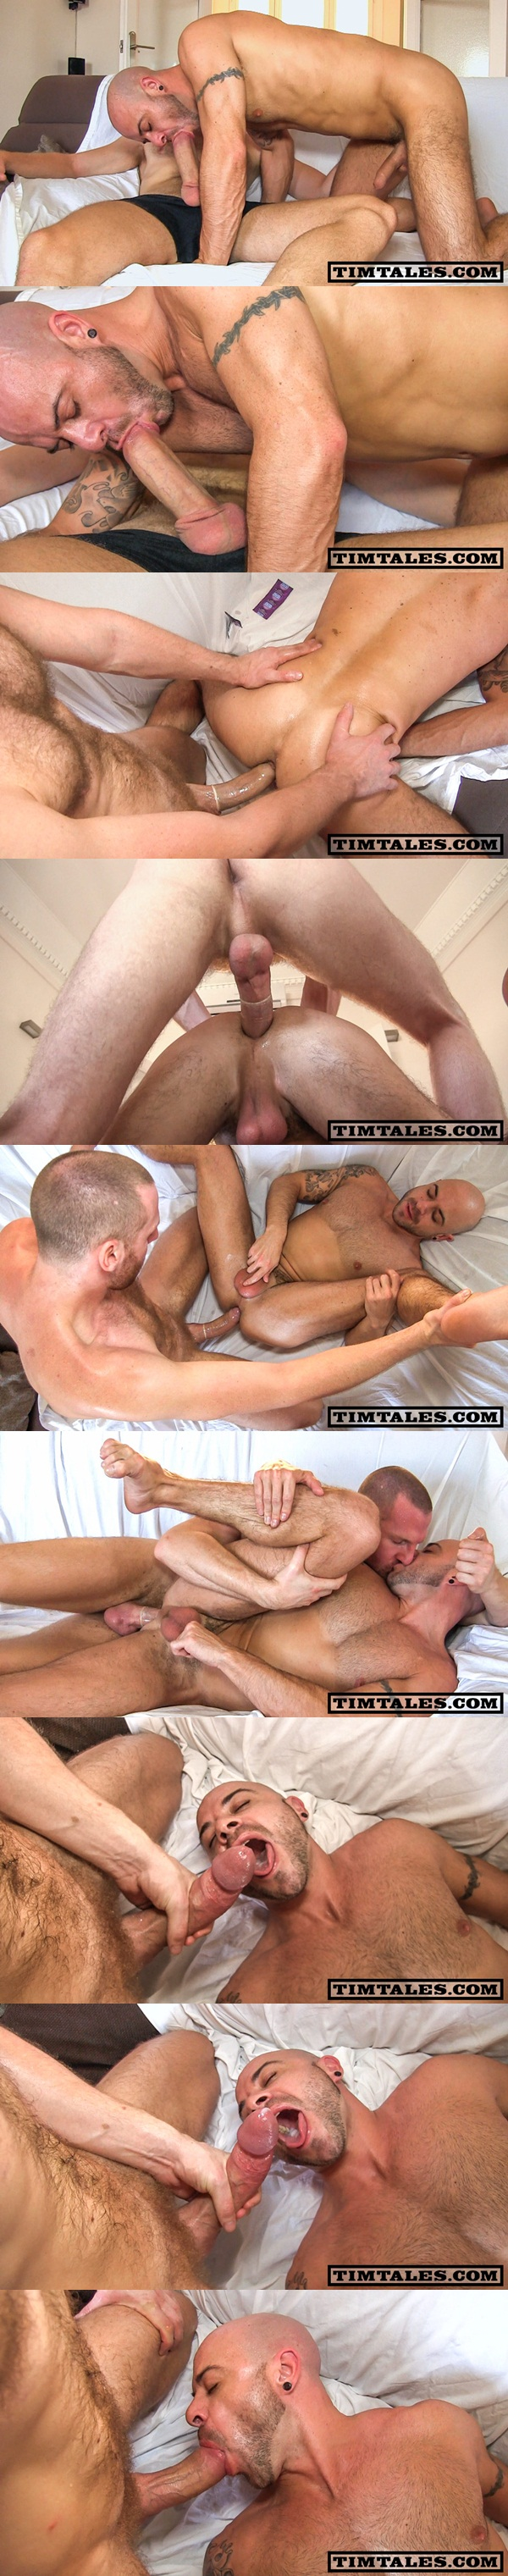 Big-dicked power-top Tim fucks UK beefy muscle bottom Ben Statham at Timtales 01